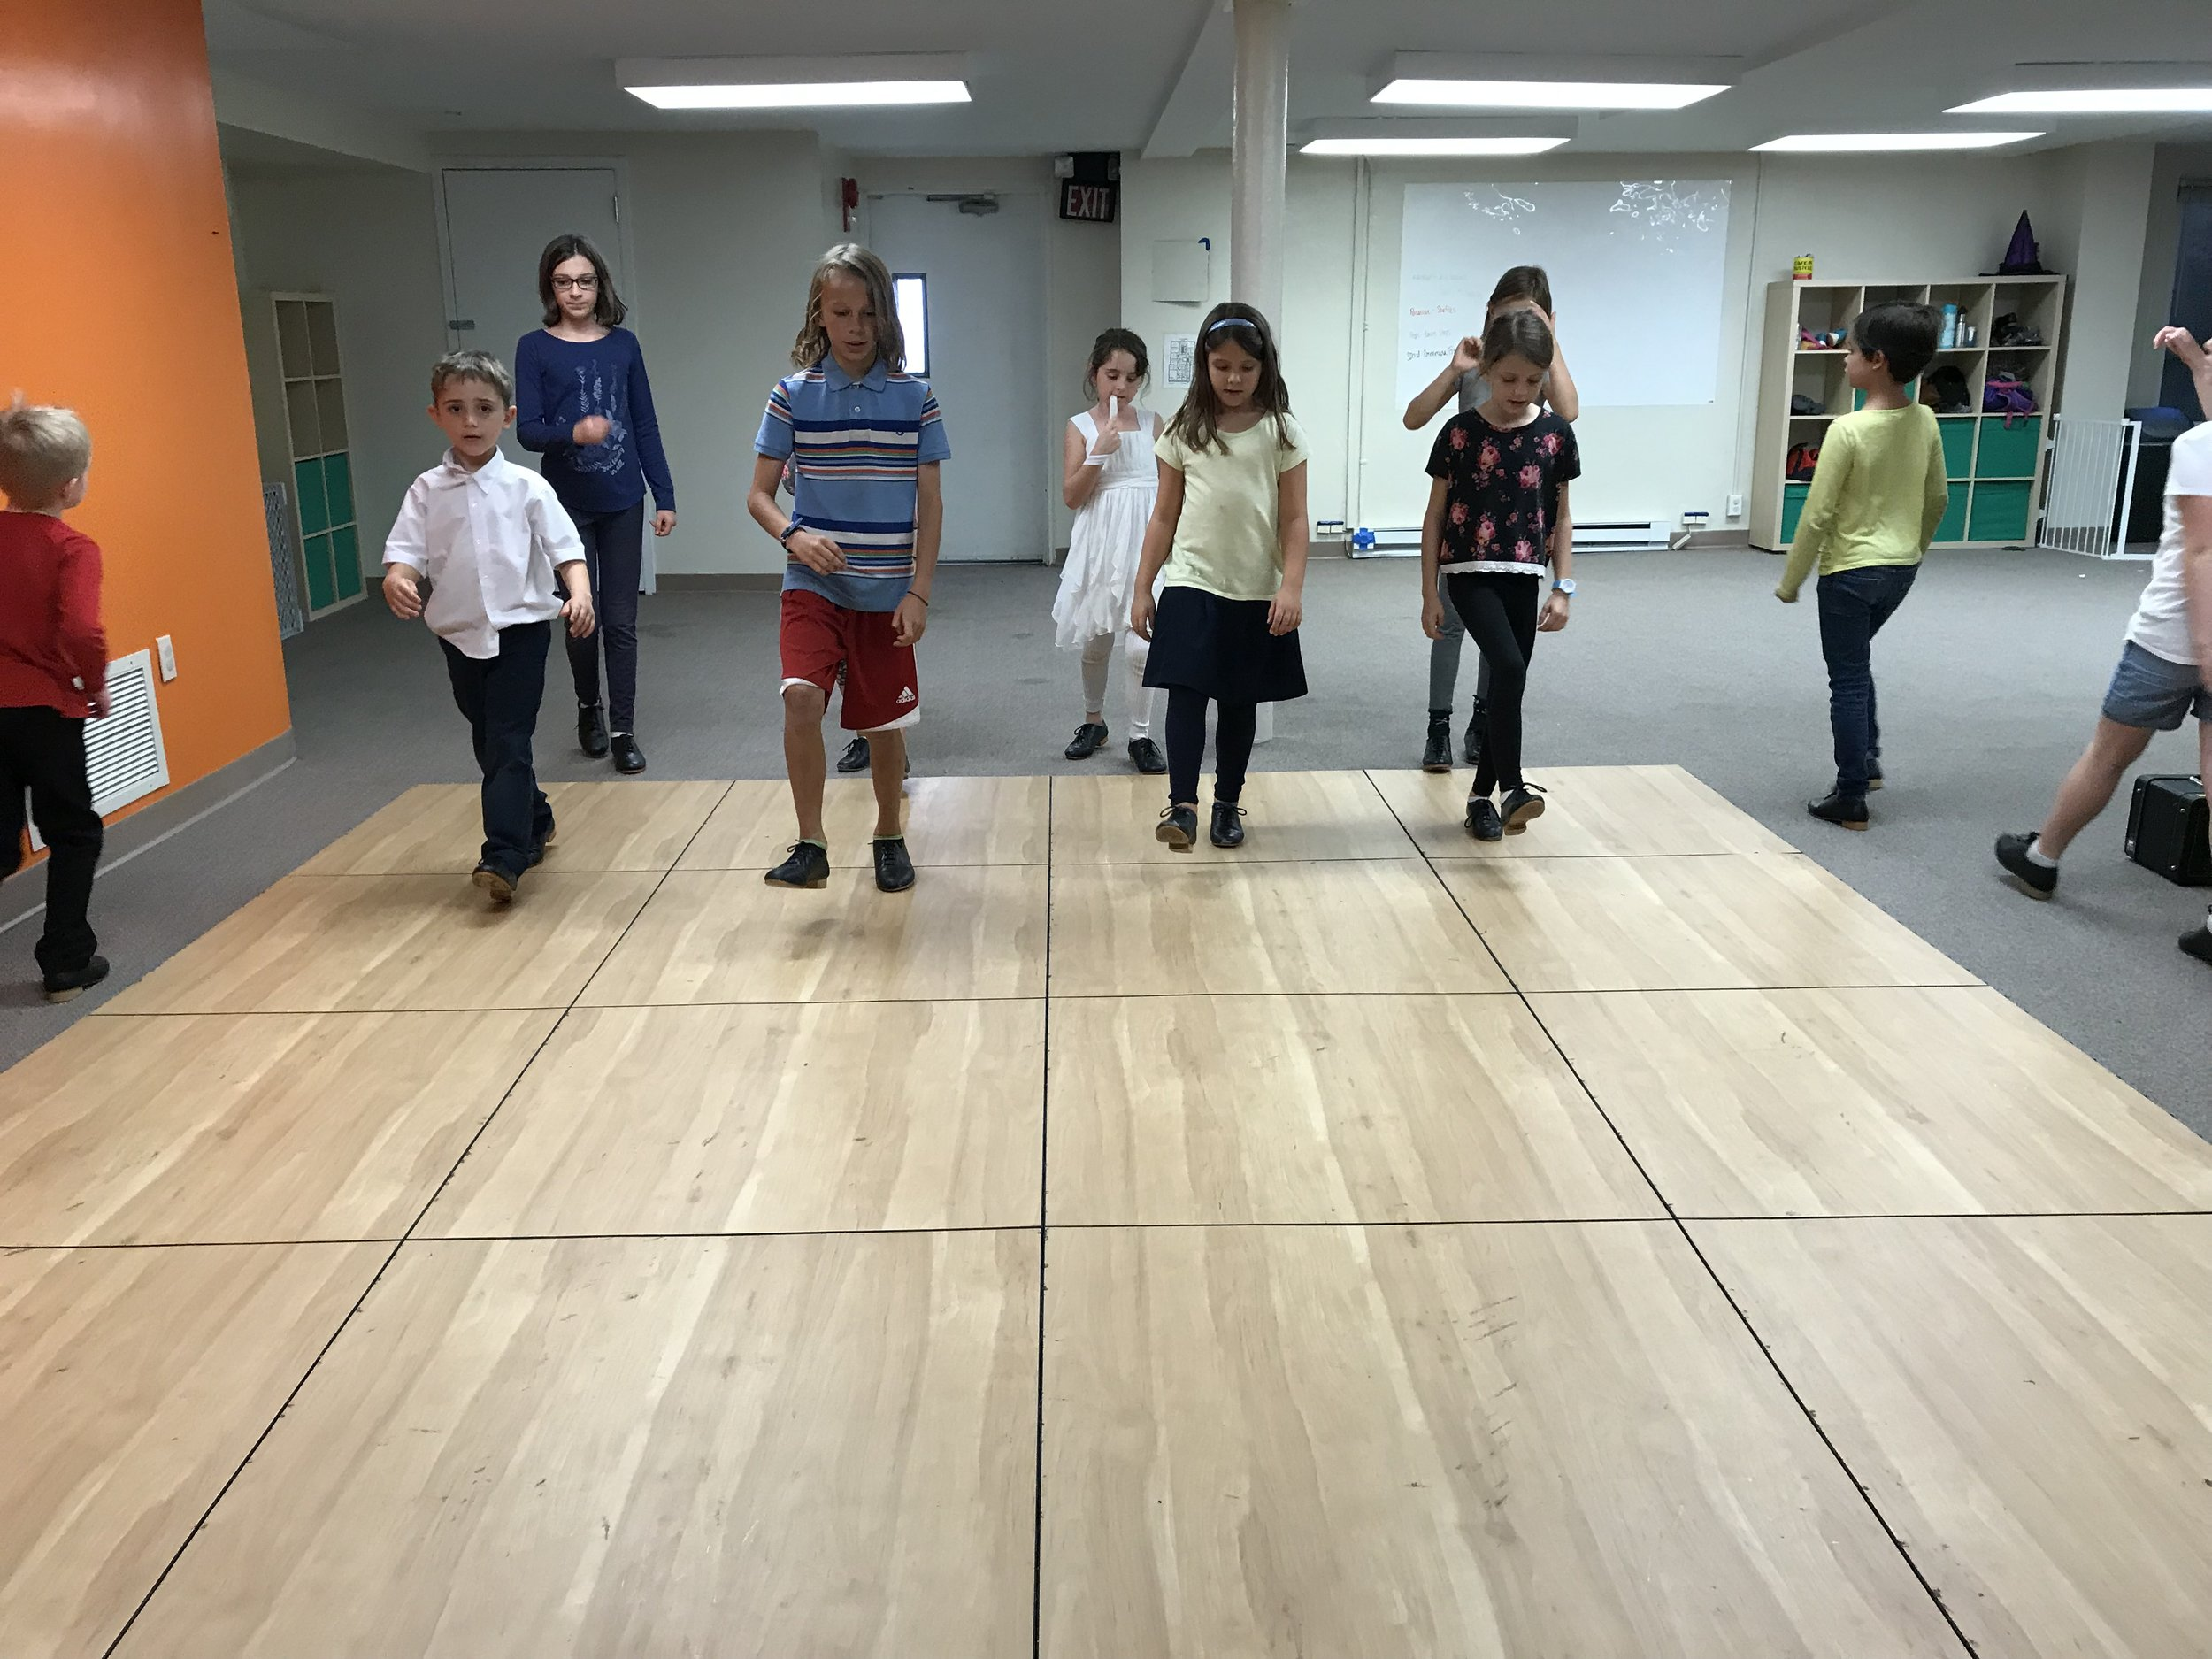 """We have been including """"across the floor"""" time as part of our warmup, working on executing our steps in time with each other.  We do """"dee dum"""" patterns, including the Connemara basic (forward and back), and the """"Snoopy Shuffle"""""""